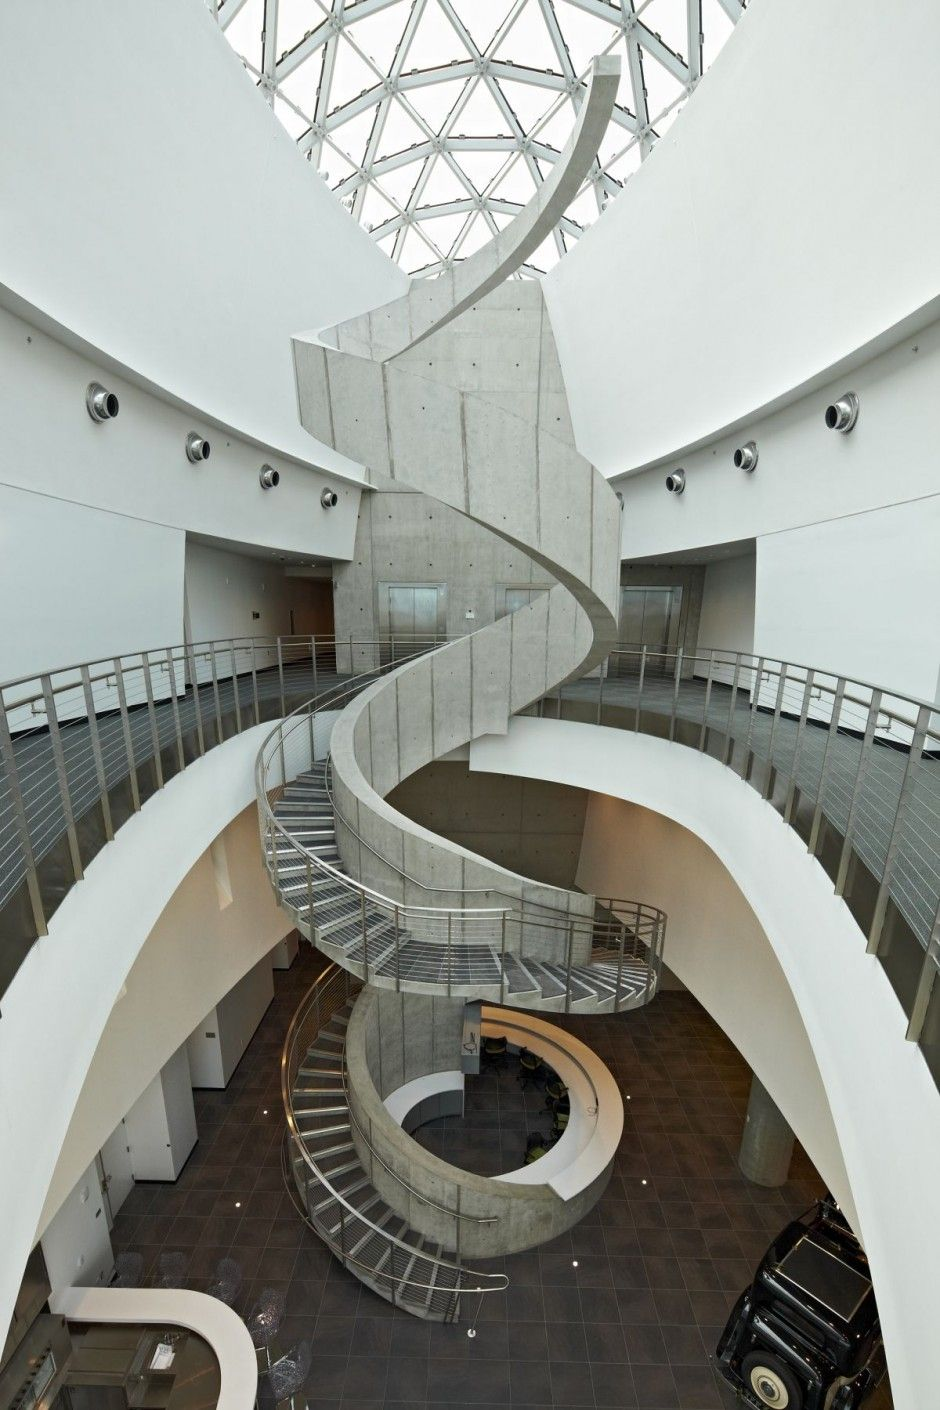 2014 Staircase At The Great Salvador Dali Museum, St. Petersburg, Florida   Interior  Design By HOK   Photo By Moris Moreno   Mlle